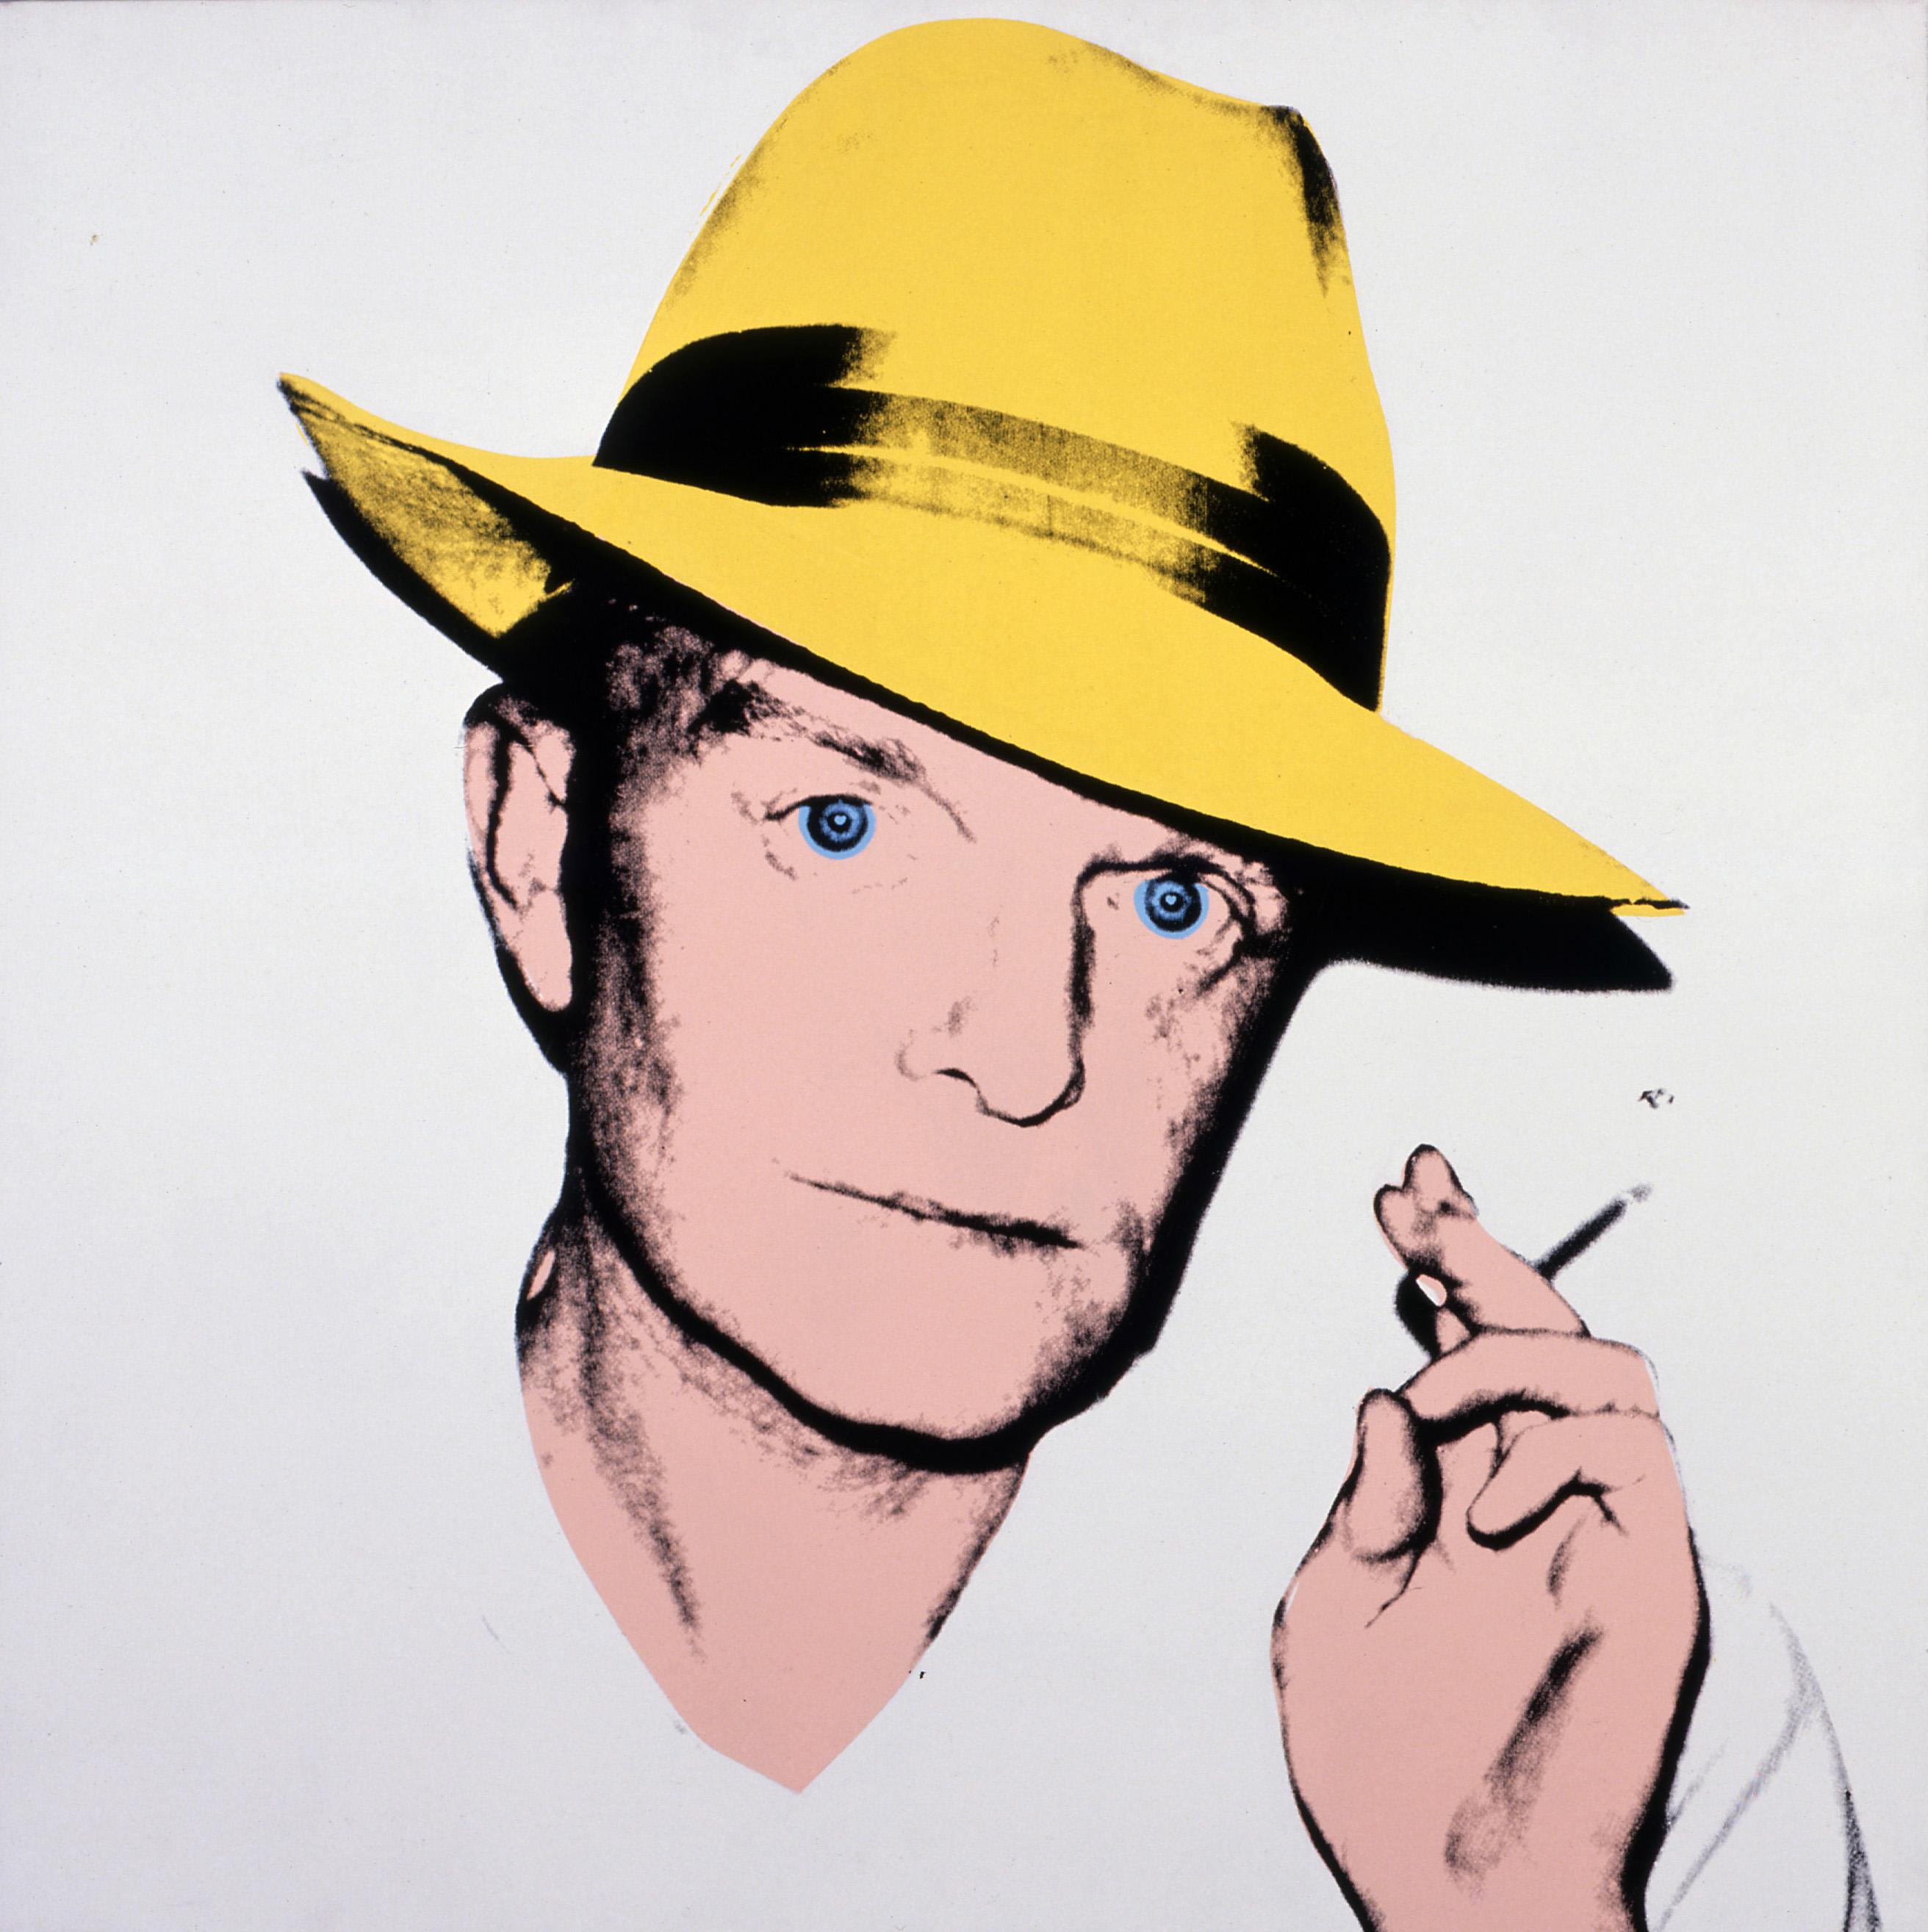 Andy Warhol, Truman Capote, 1979, acrylic and silkscreen ink on linen, 40 x 40 in., Collection of The Andy Warhol Museum, Pittsburgh, © 2016 The Andy Warhol Foundation for the Visual Arts, Inc. / Artists Rights Society (ARS), New York